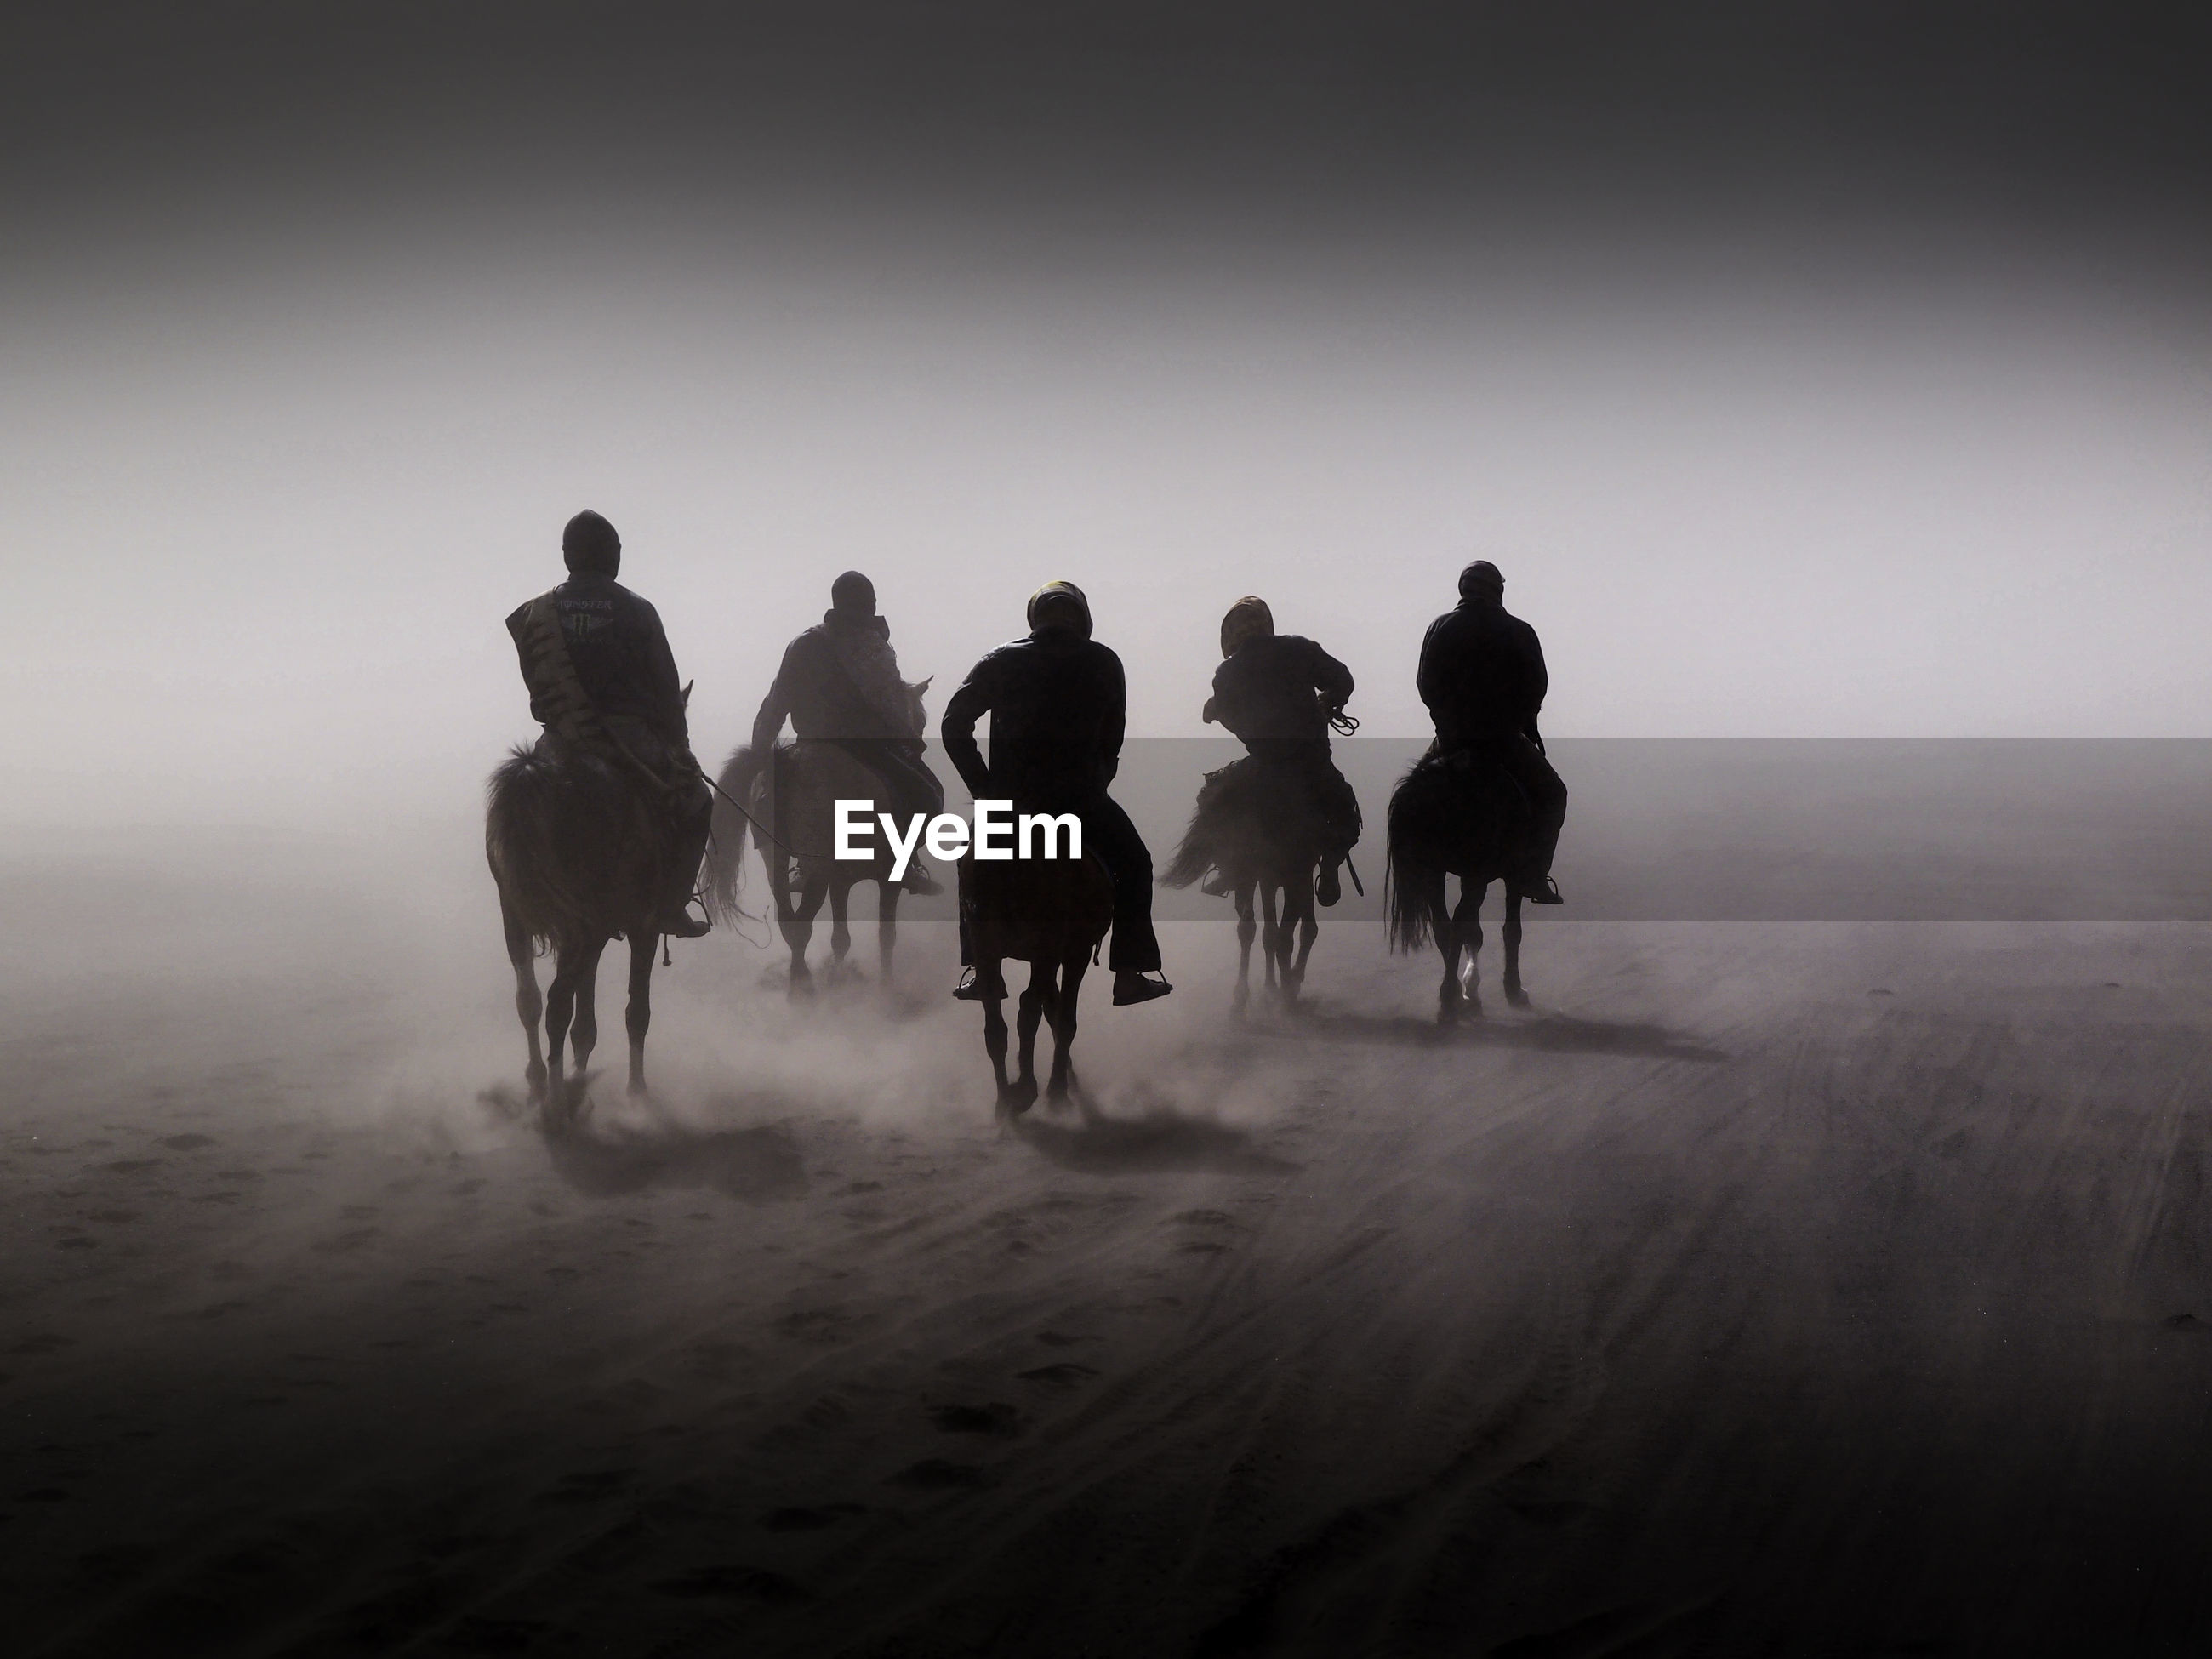 Silhouette people riding horses on field against sky during foggy weather